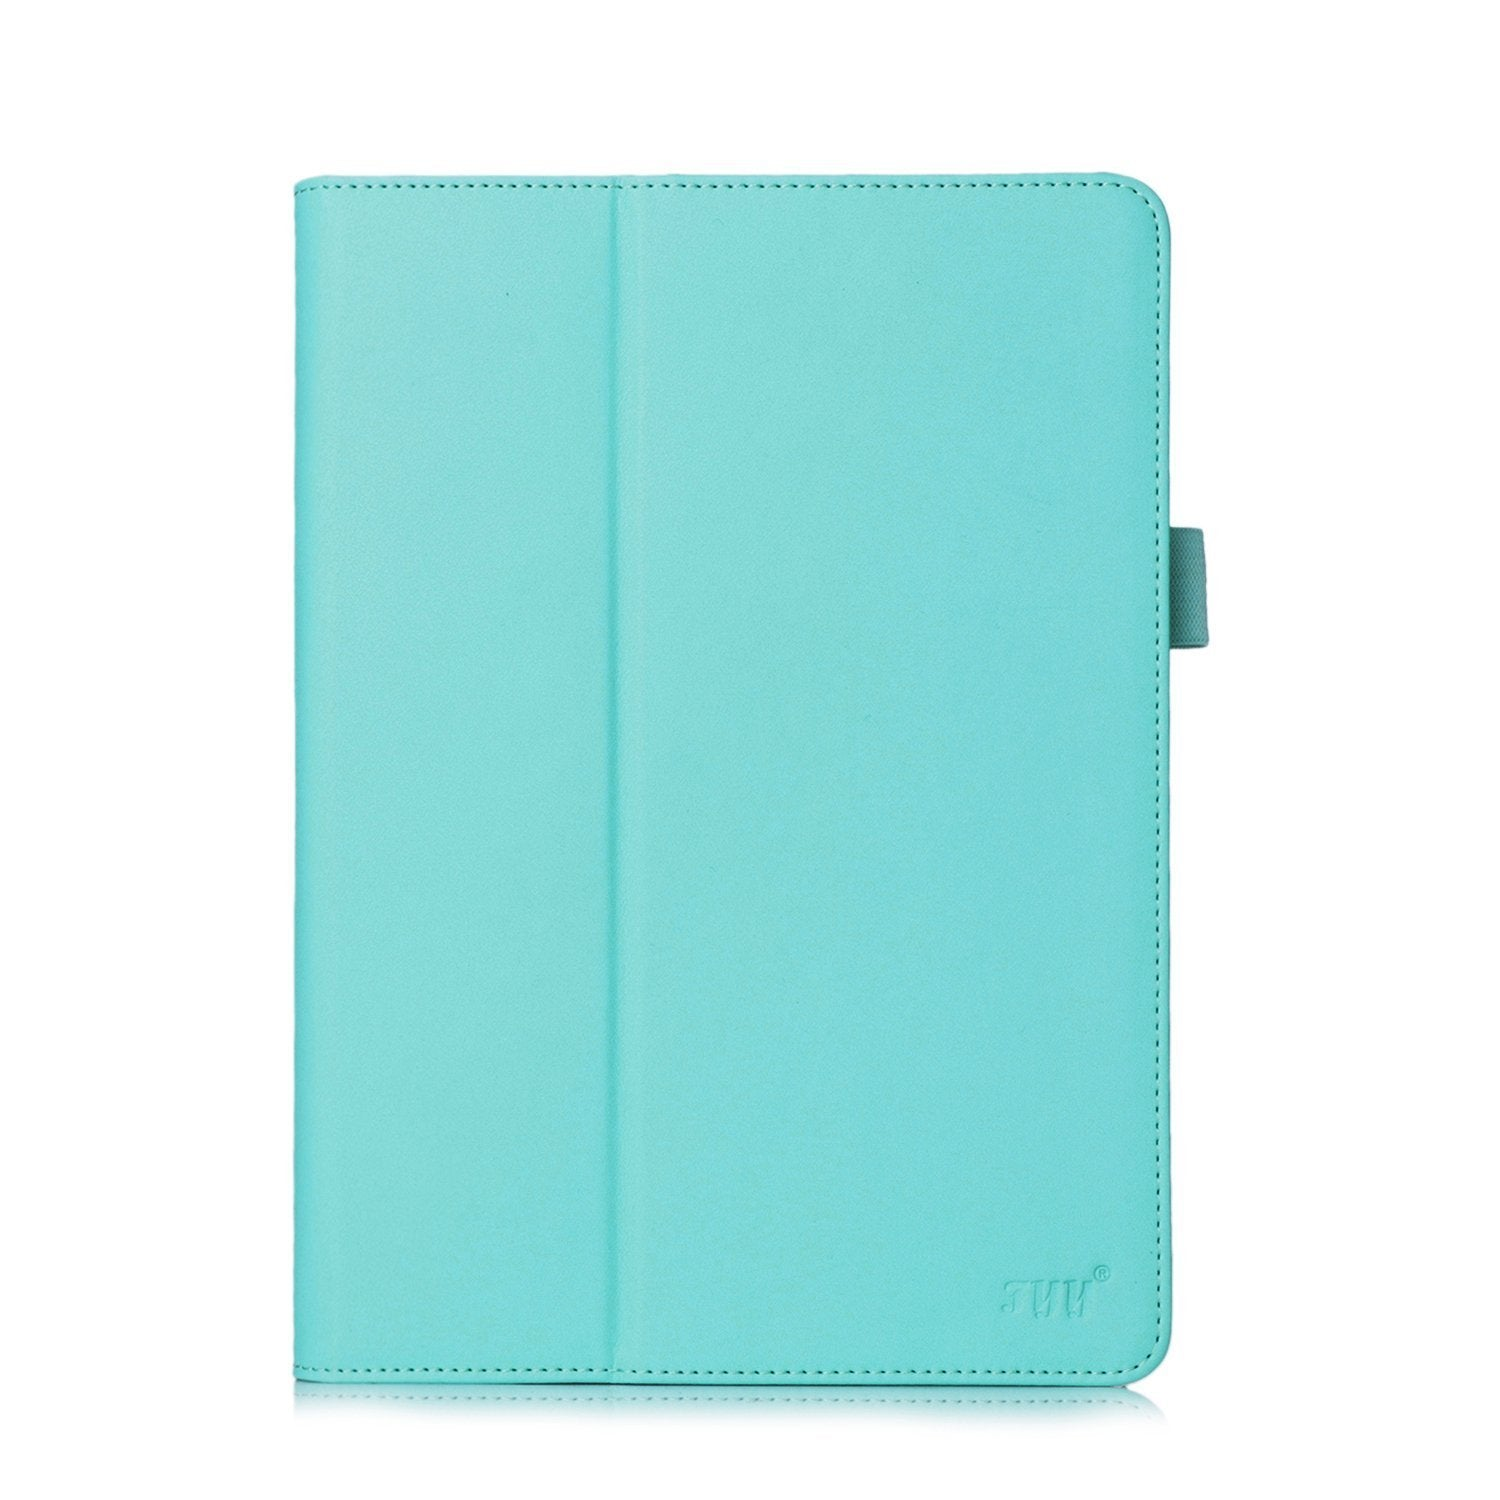 "PU Leather Folio Case for iPad Pro 9.7"" (2016)"